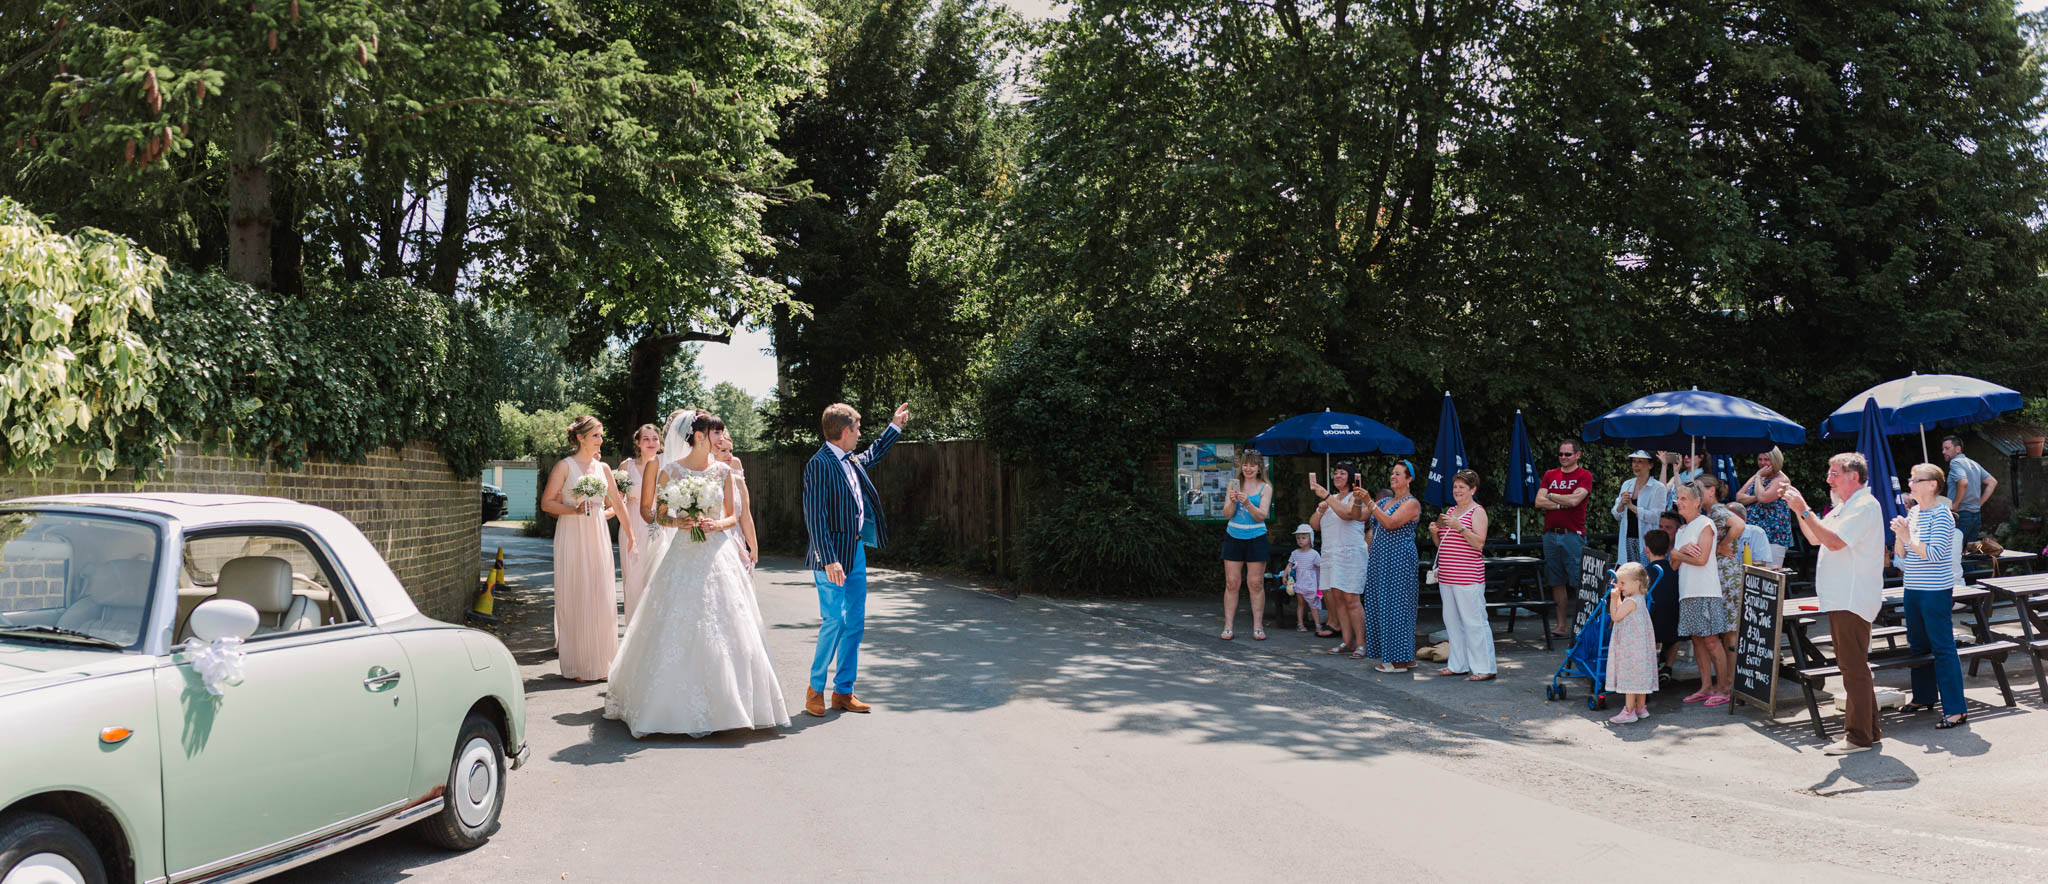 bride attracting crowds as she walks to the church